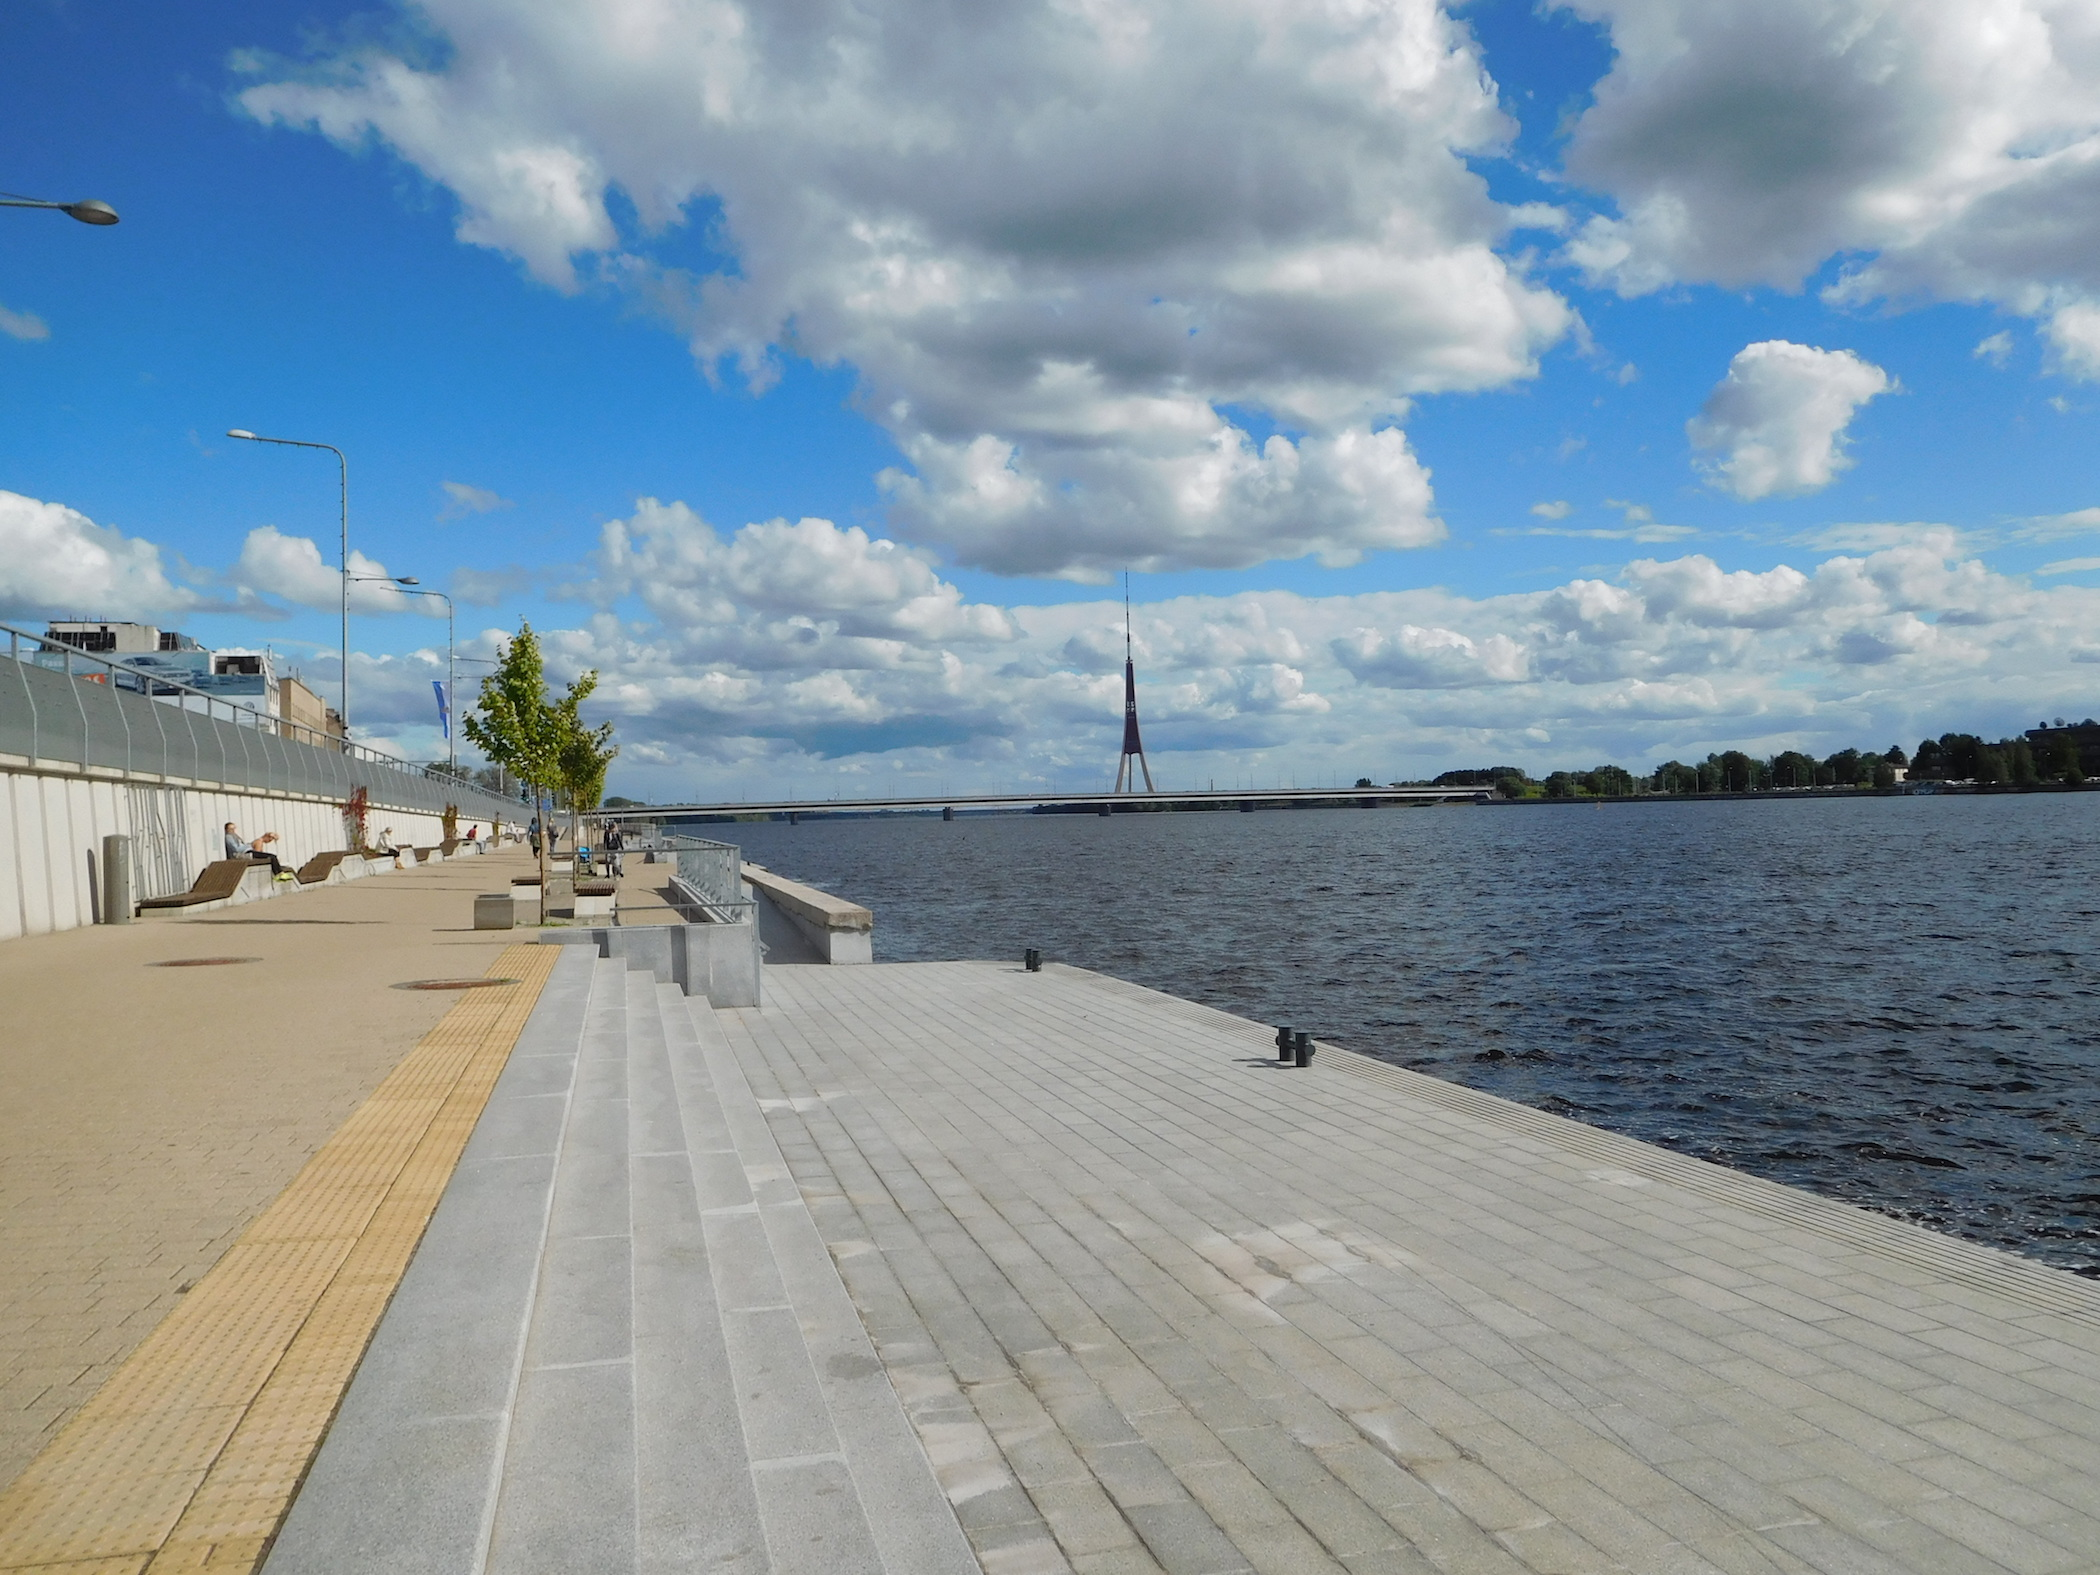 Stairs leading to waterfront of Daugava river